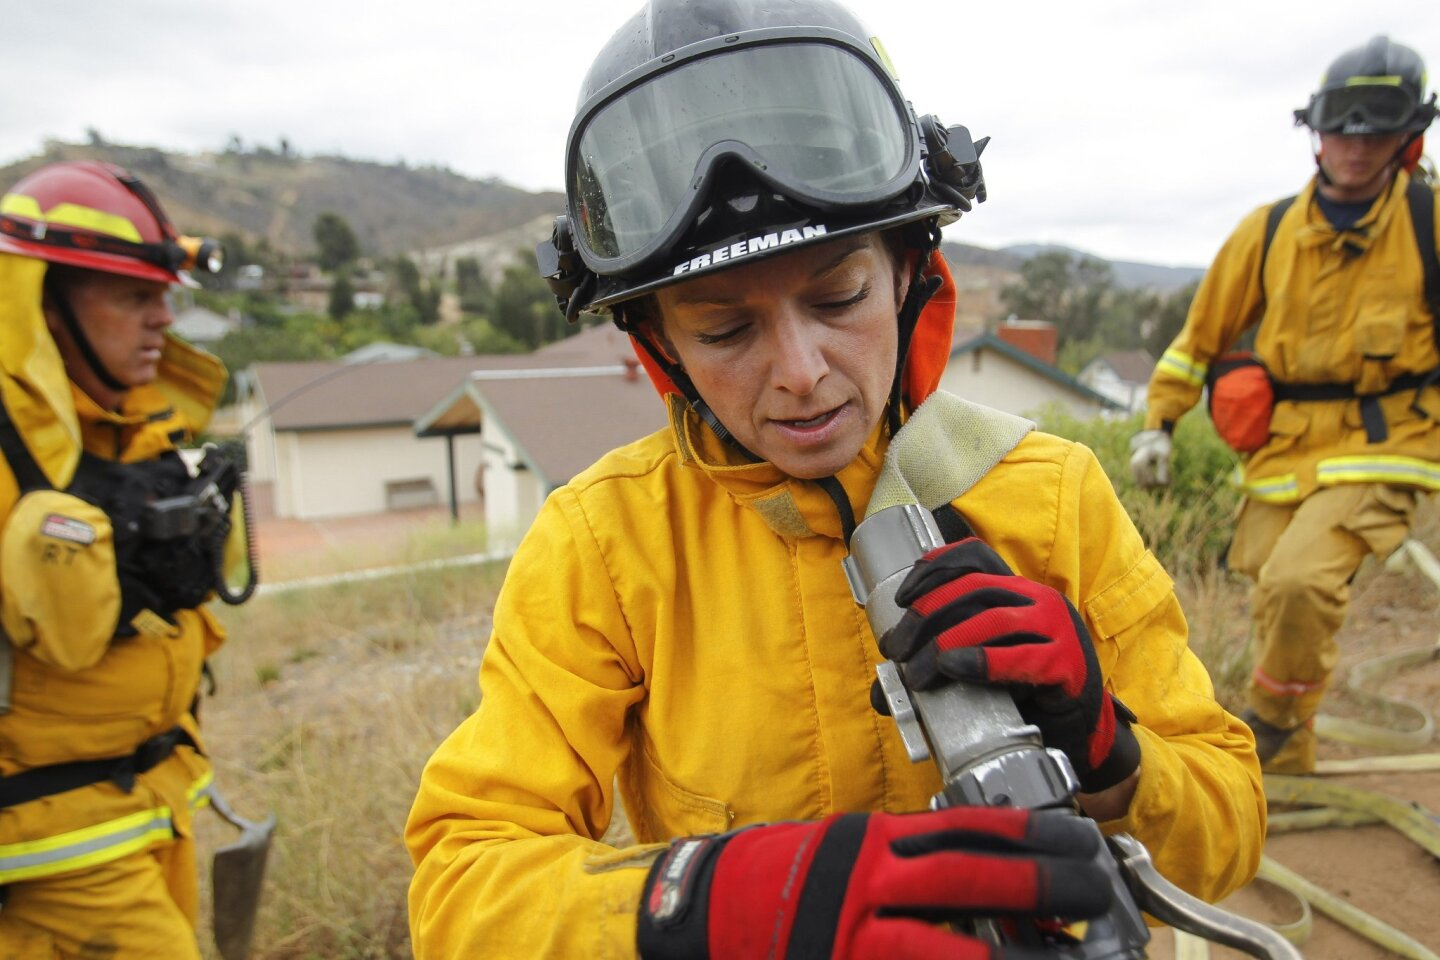 Palomar Fire Academy cadet Siene Freeman carries a hose during a wild land hose laying training session.